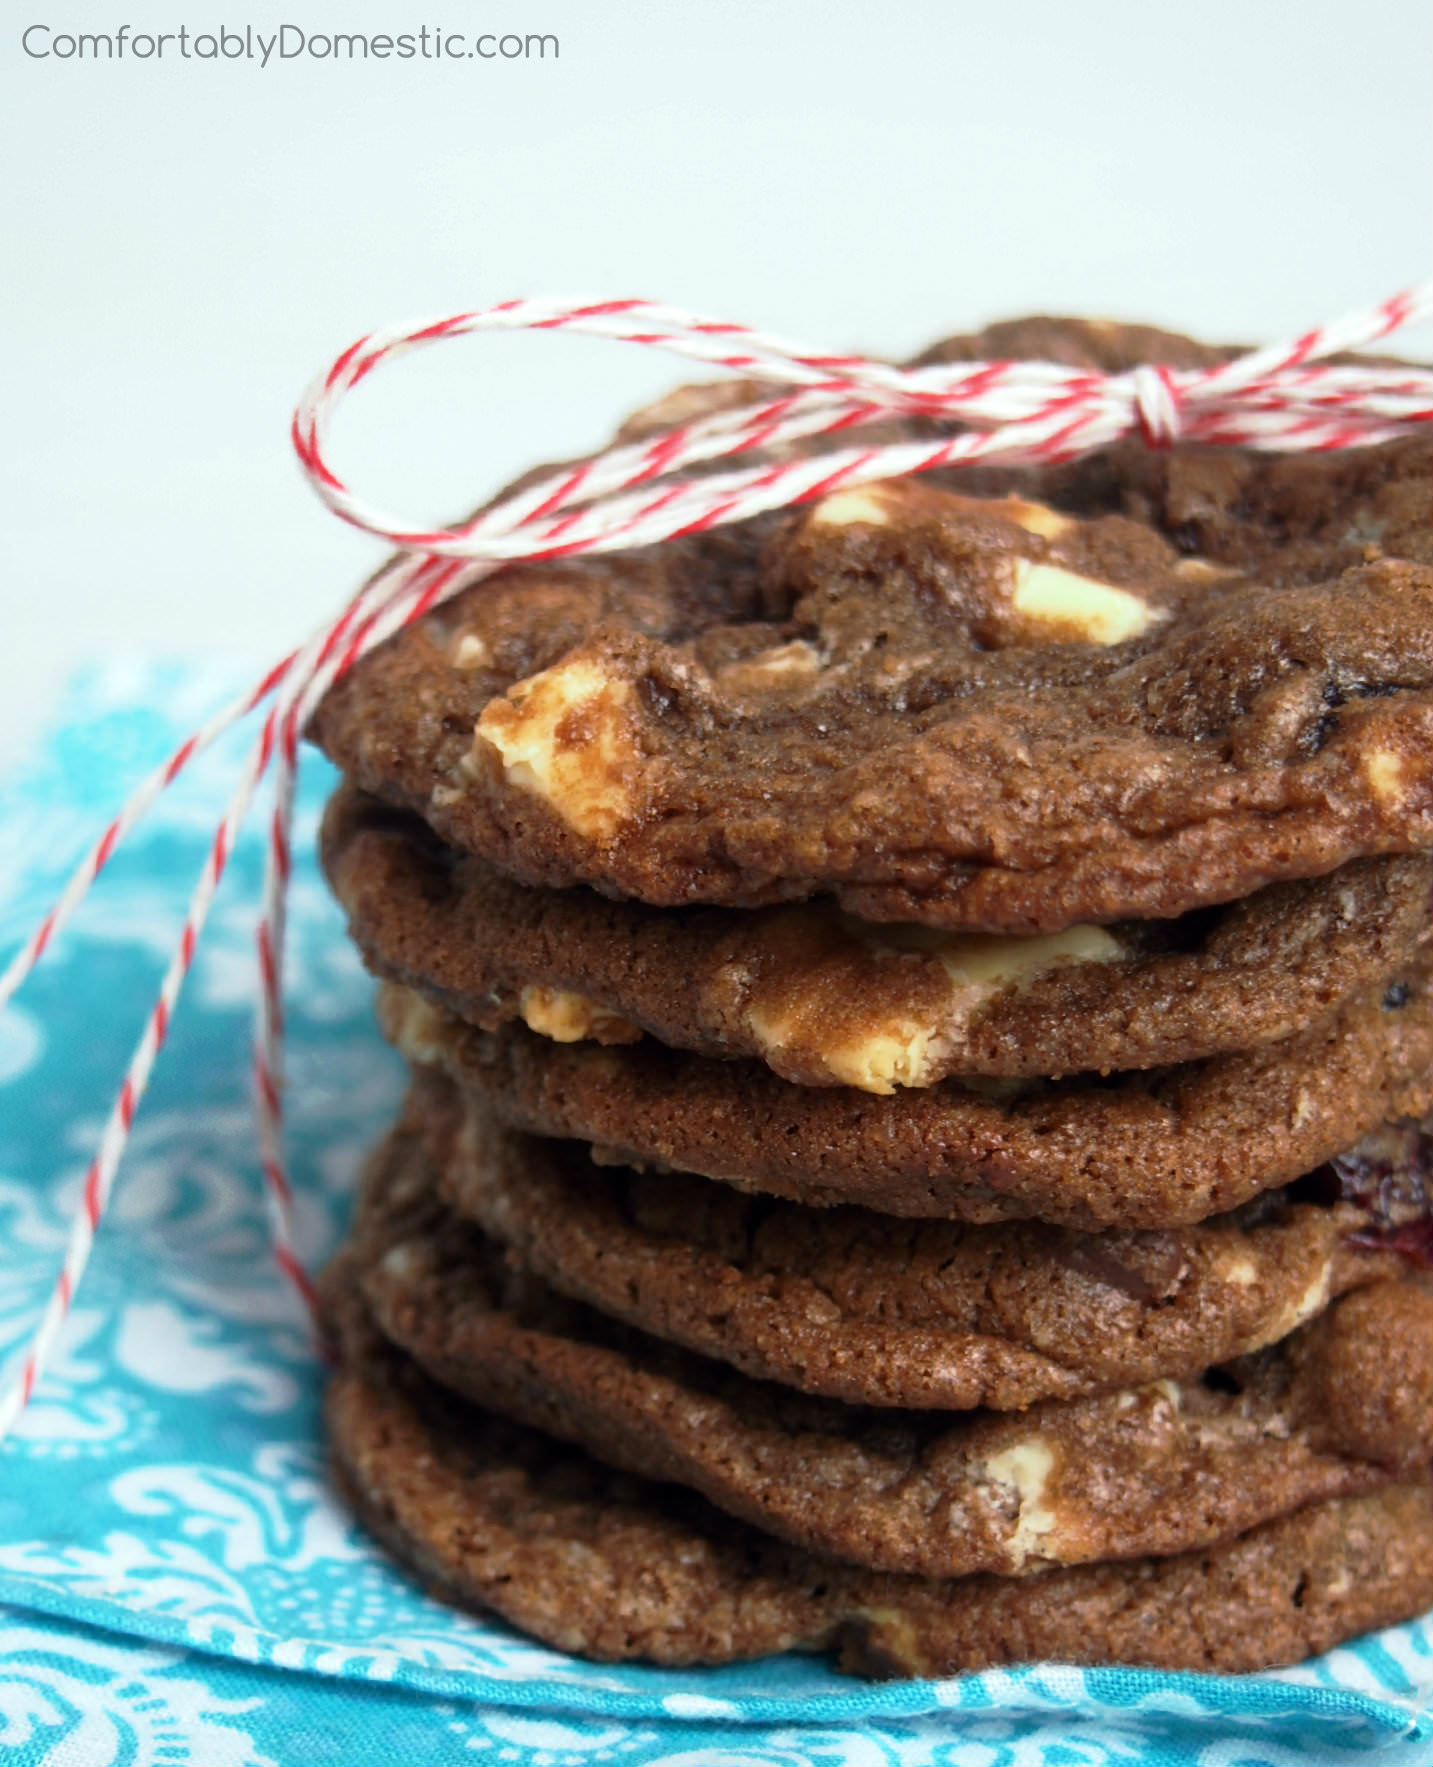 Double Chocolate Cranberry Cookies | ComfortablyDomestic.com are crisp yet chewy, rich and chocolaty cookies with tangy dried cranberries and smooth white chocolate chunks.